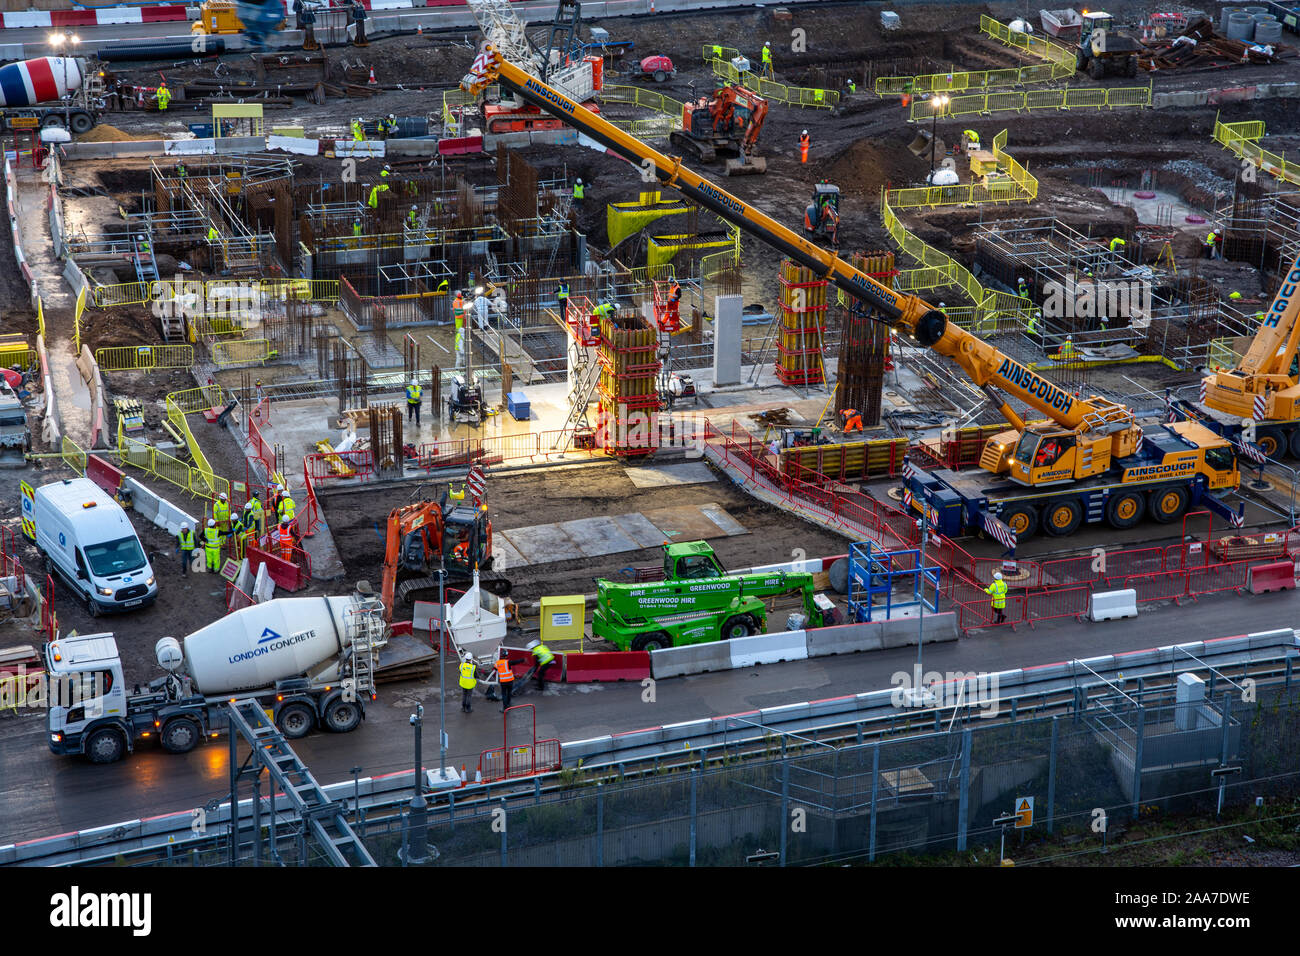 London, England, UK - November 4, 2019: Builders pour concrete at a construction site in the Olympic Park during regeneration of the Stratford neighbo Stock Photo